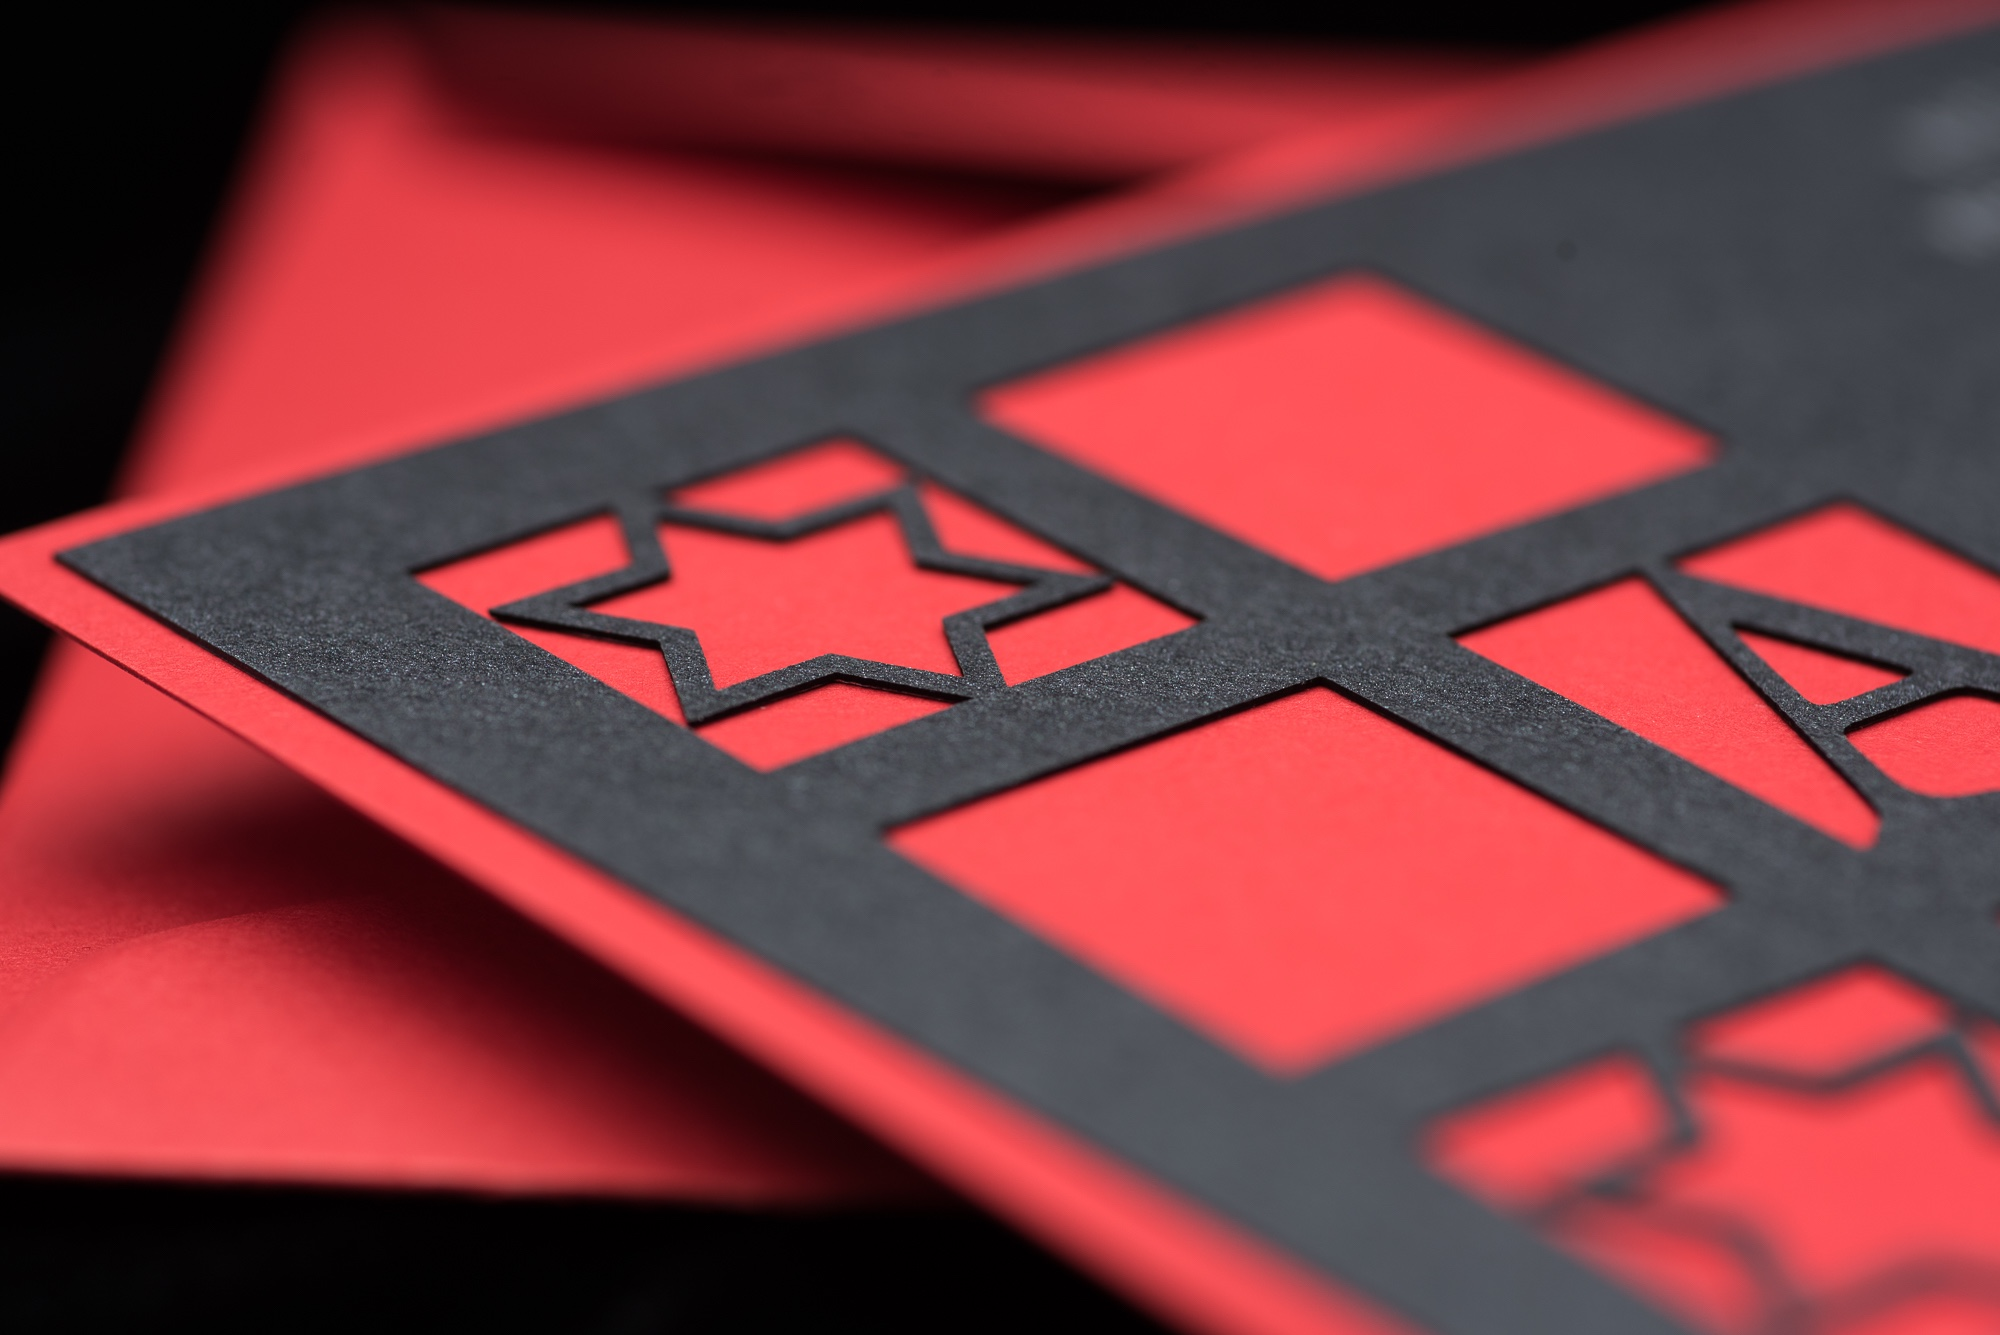 diecut bar mitzvah invitation features windows of monogram and star of david, silver thermography on black paper layered to reveal red below.